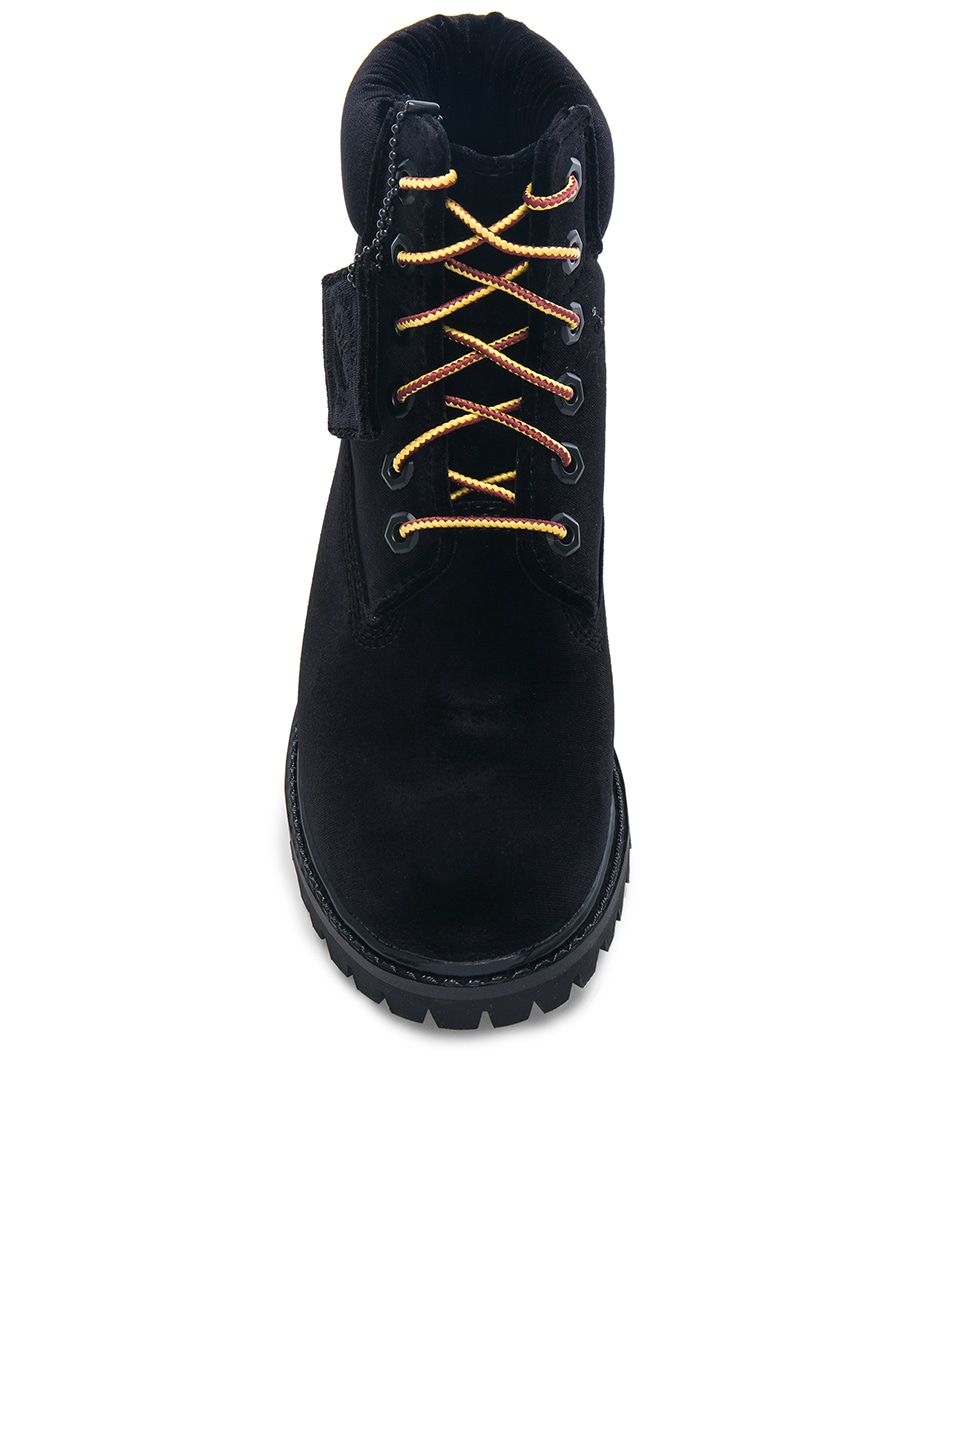 Image 4 of OFF-WHITE x Timberland Velvet Hiking Boots in Black